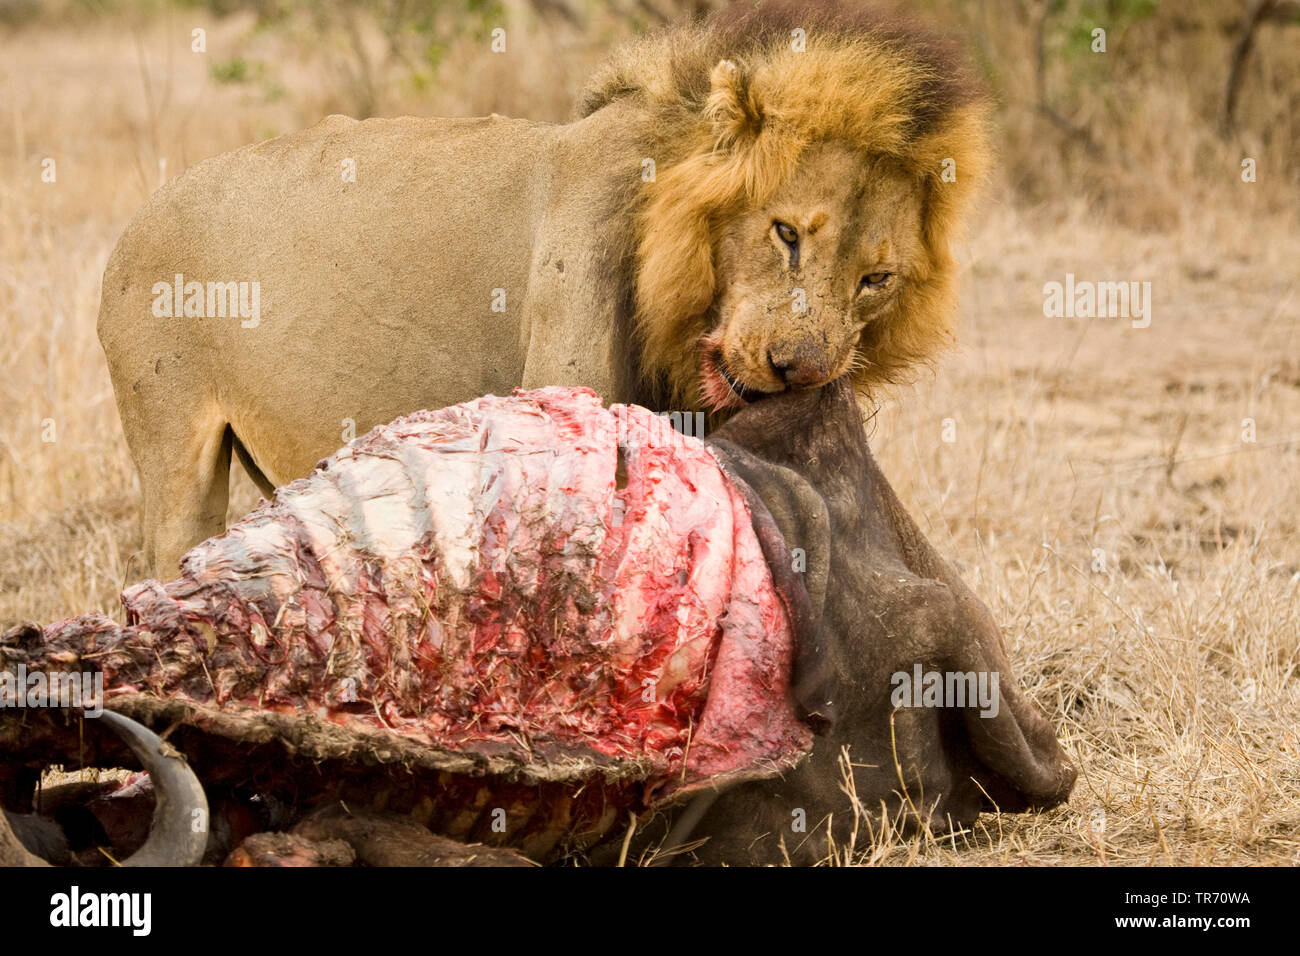 lion (Panthera leo), eating a cadaver, South Africa, Krueger National Park - Stock Image